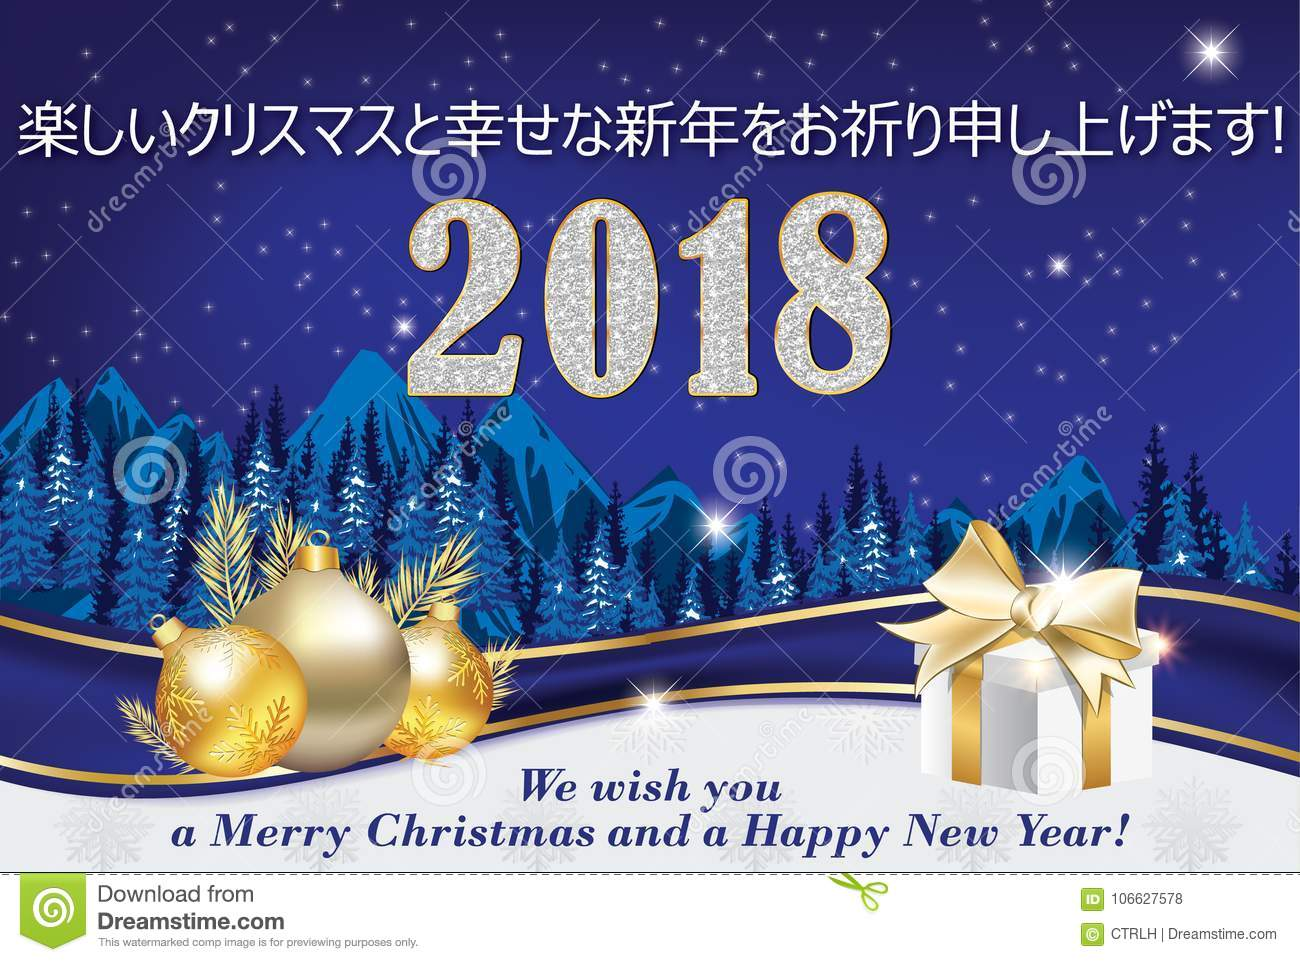 Greeting Card For Winter Season With Message In Japanese And English ...